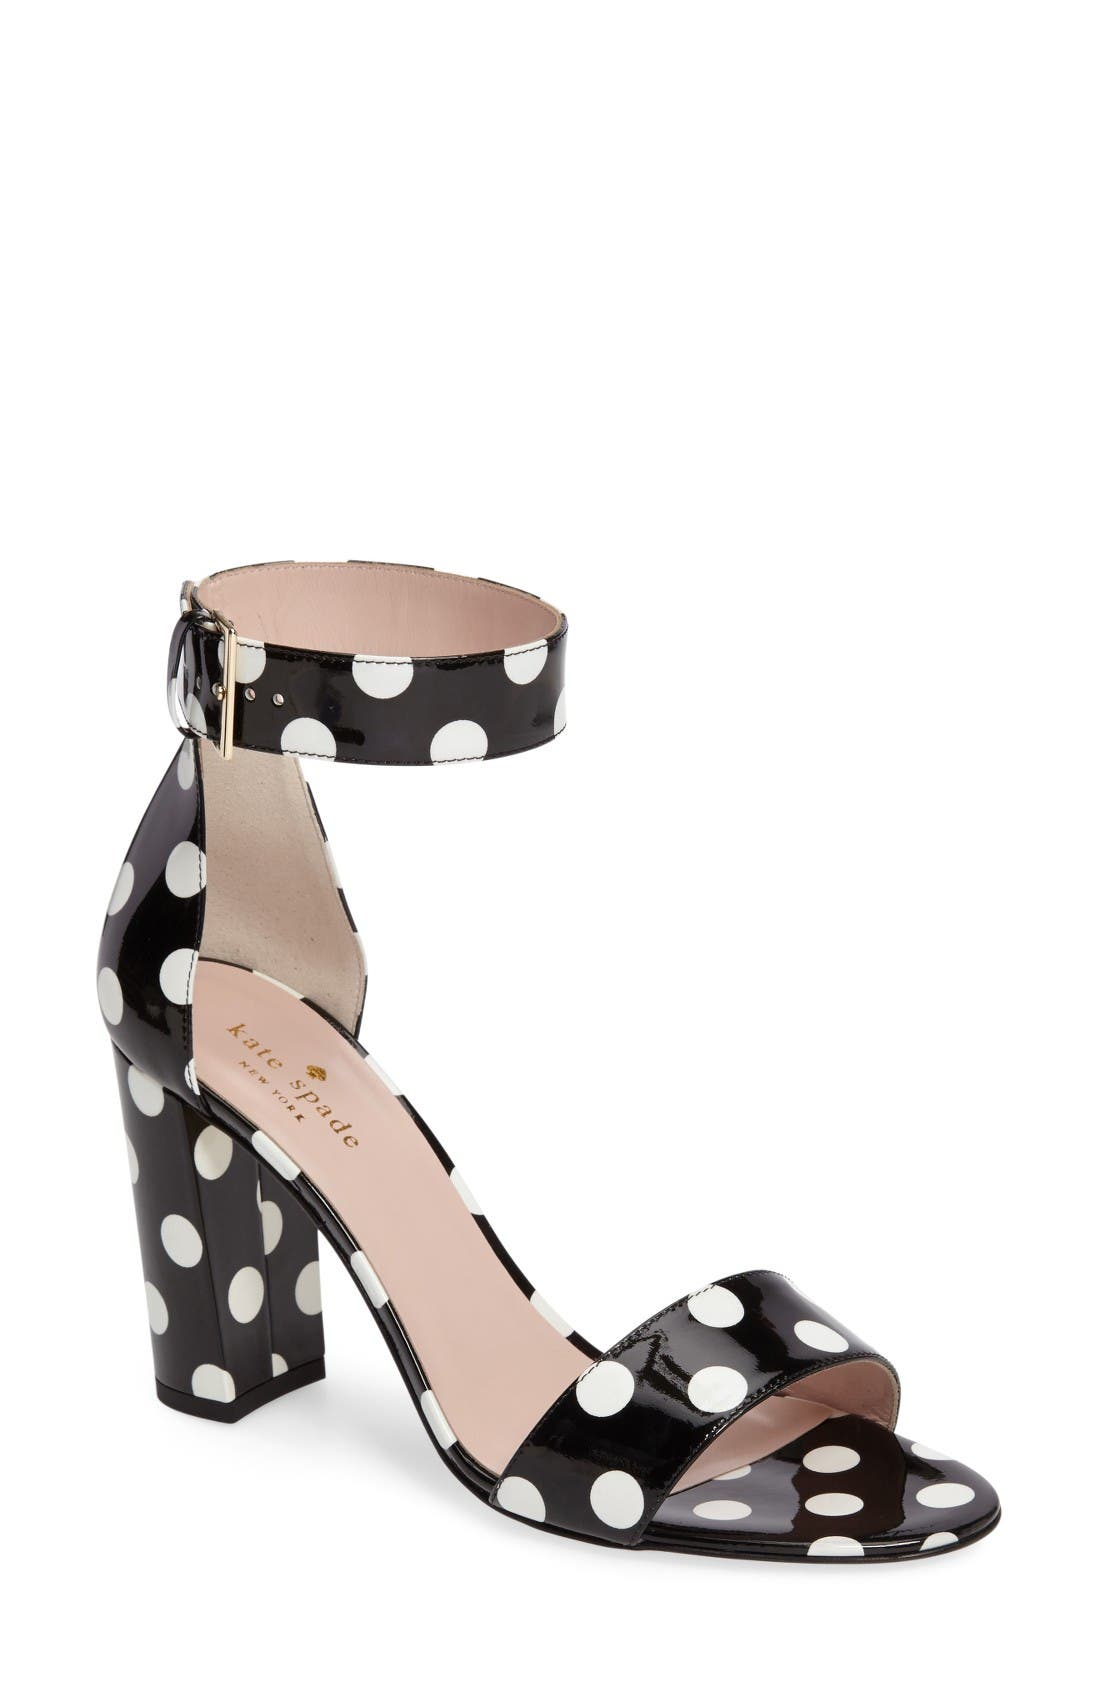 Main Image - kate spade new york idabelle too sandal (Women)